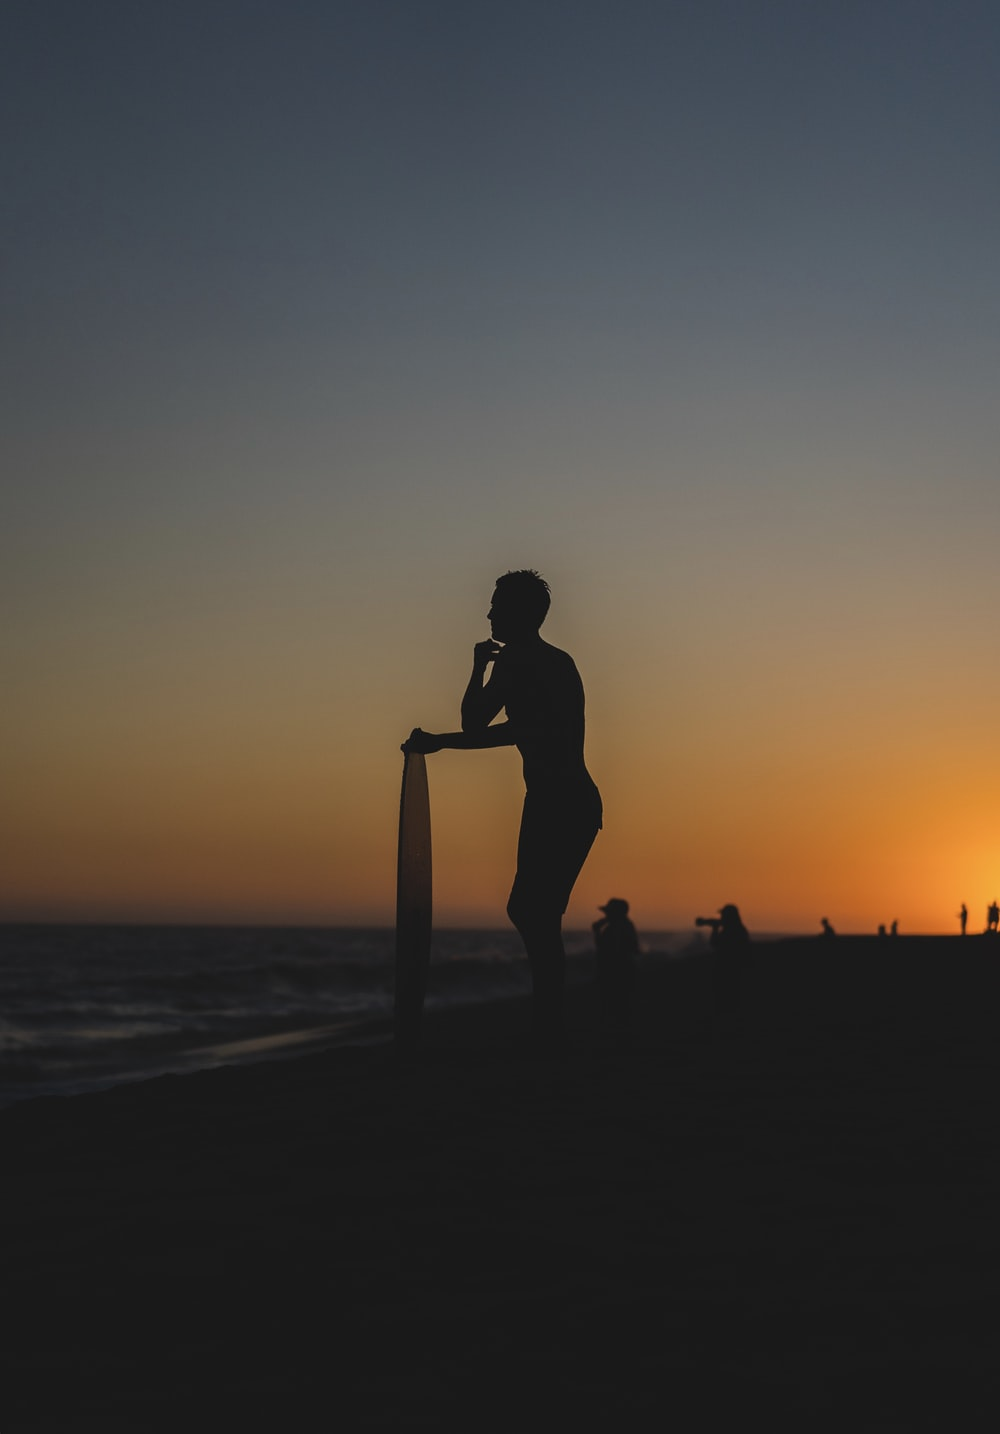 person standing and holding surfboard on shore during golden hour